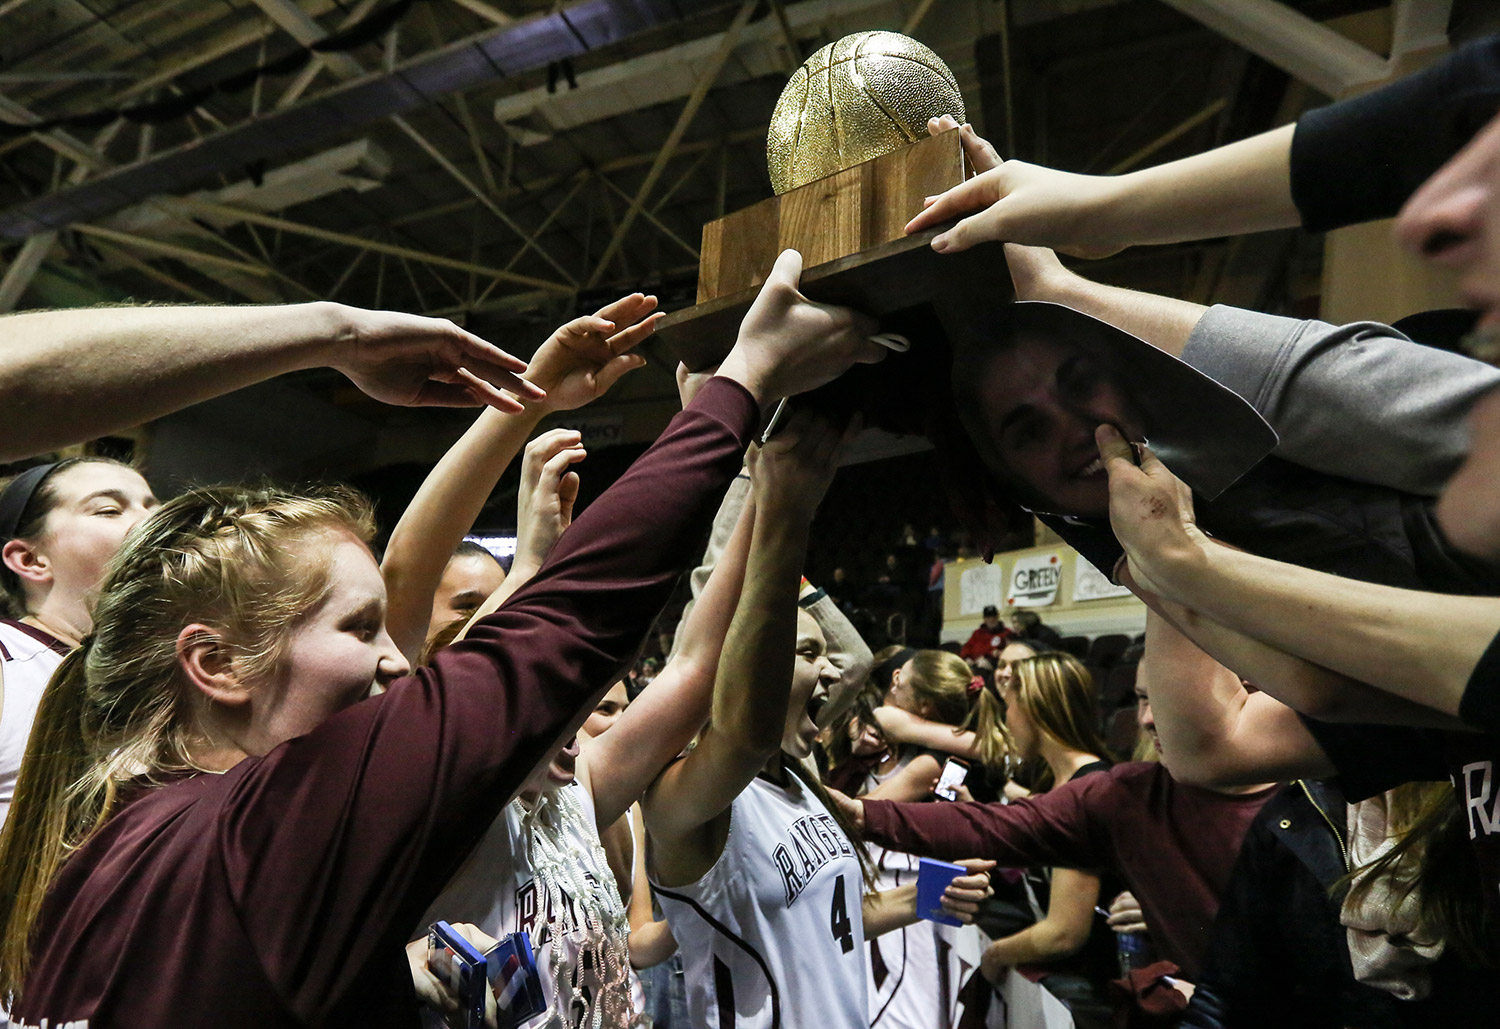 FEB. 27 FINALS: The Greely girls' basketball team passes the Class B state championship trophy into the student section at the Cross Insurance Arena in Portland after beating Presque Isle, 56-39, on Friday night.